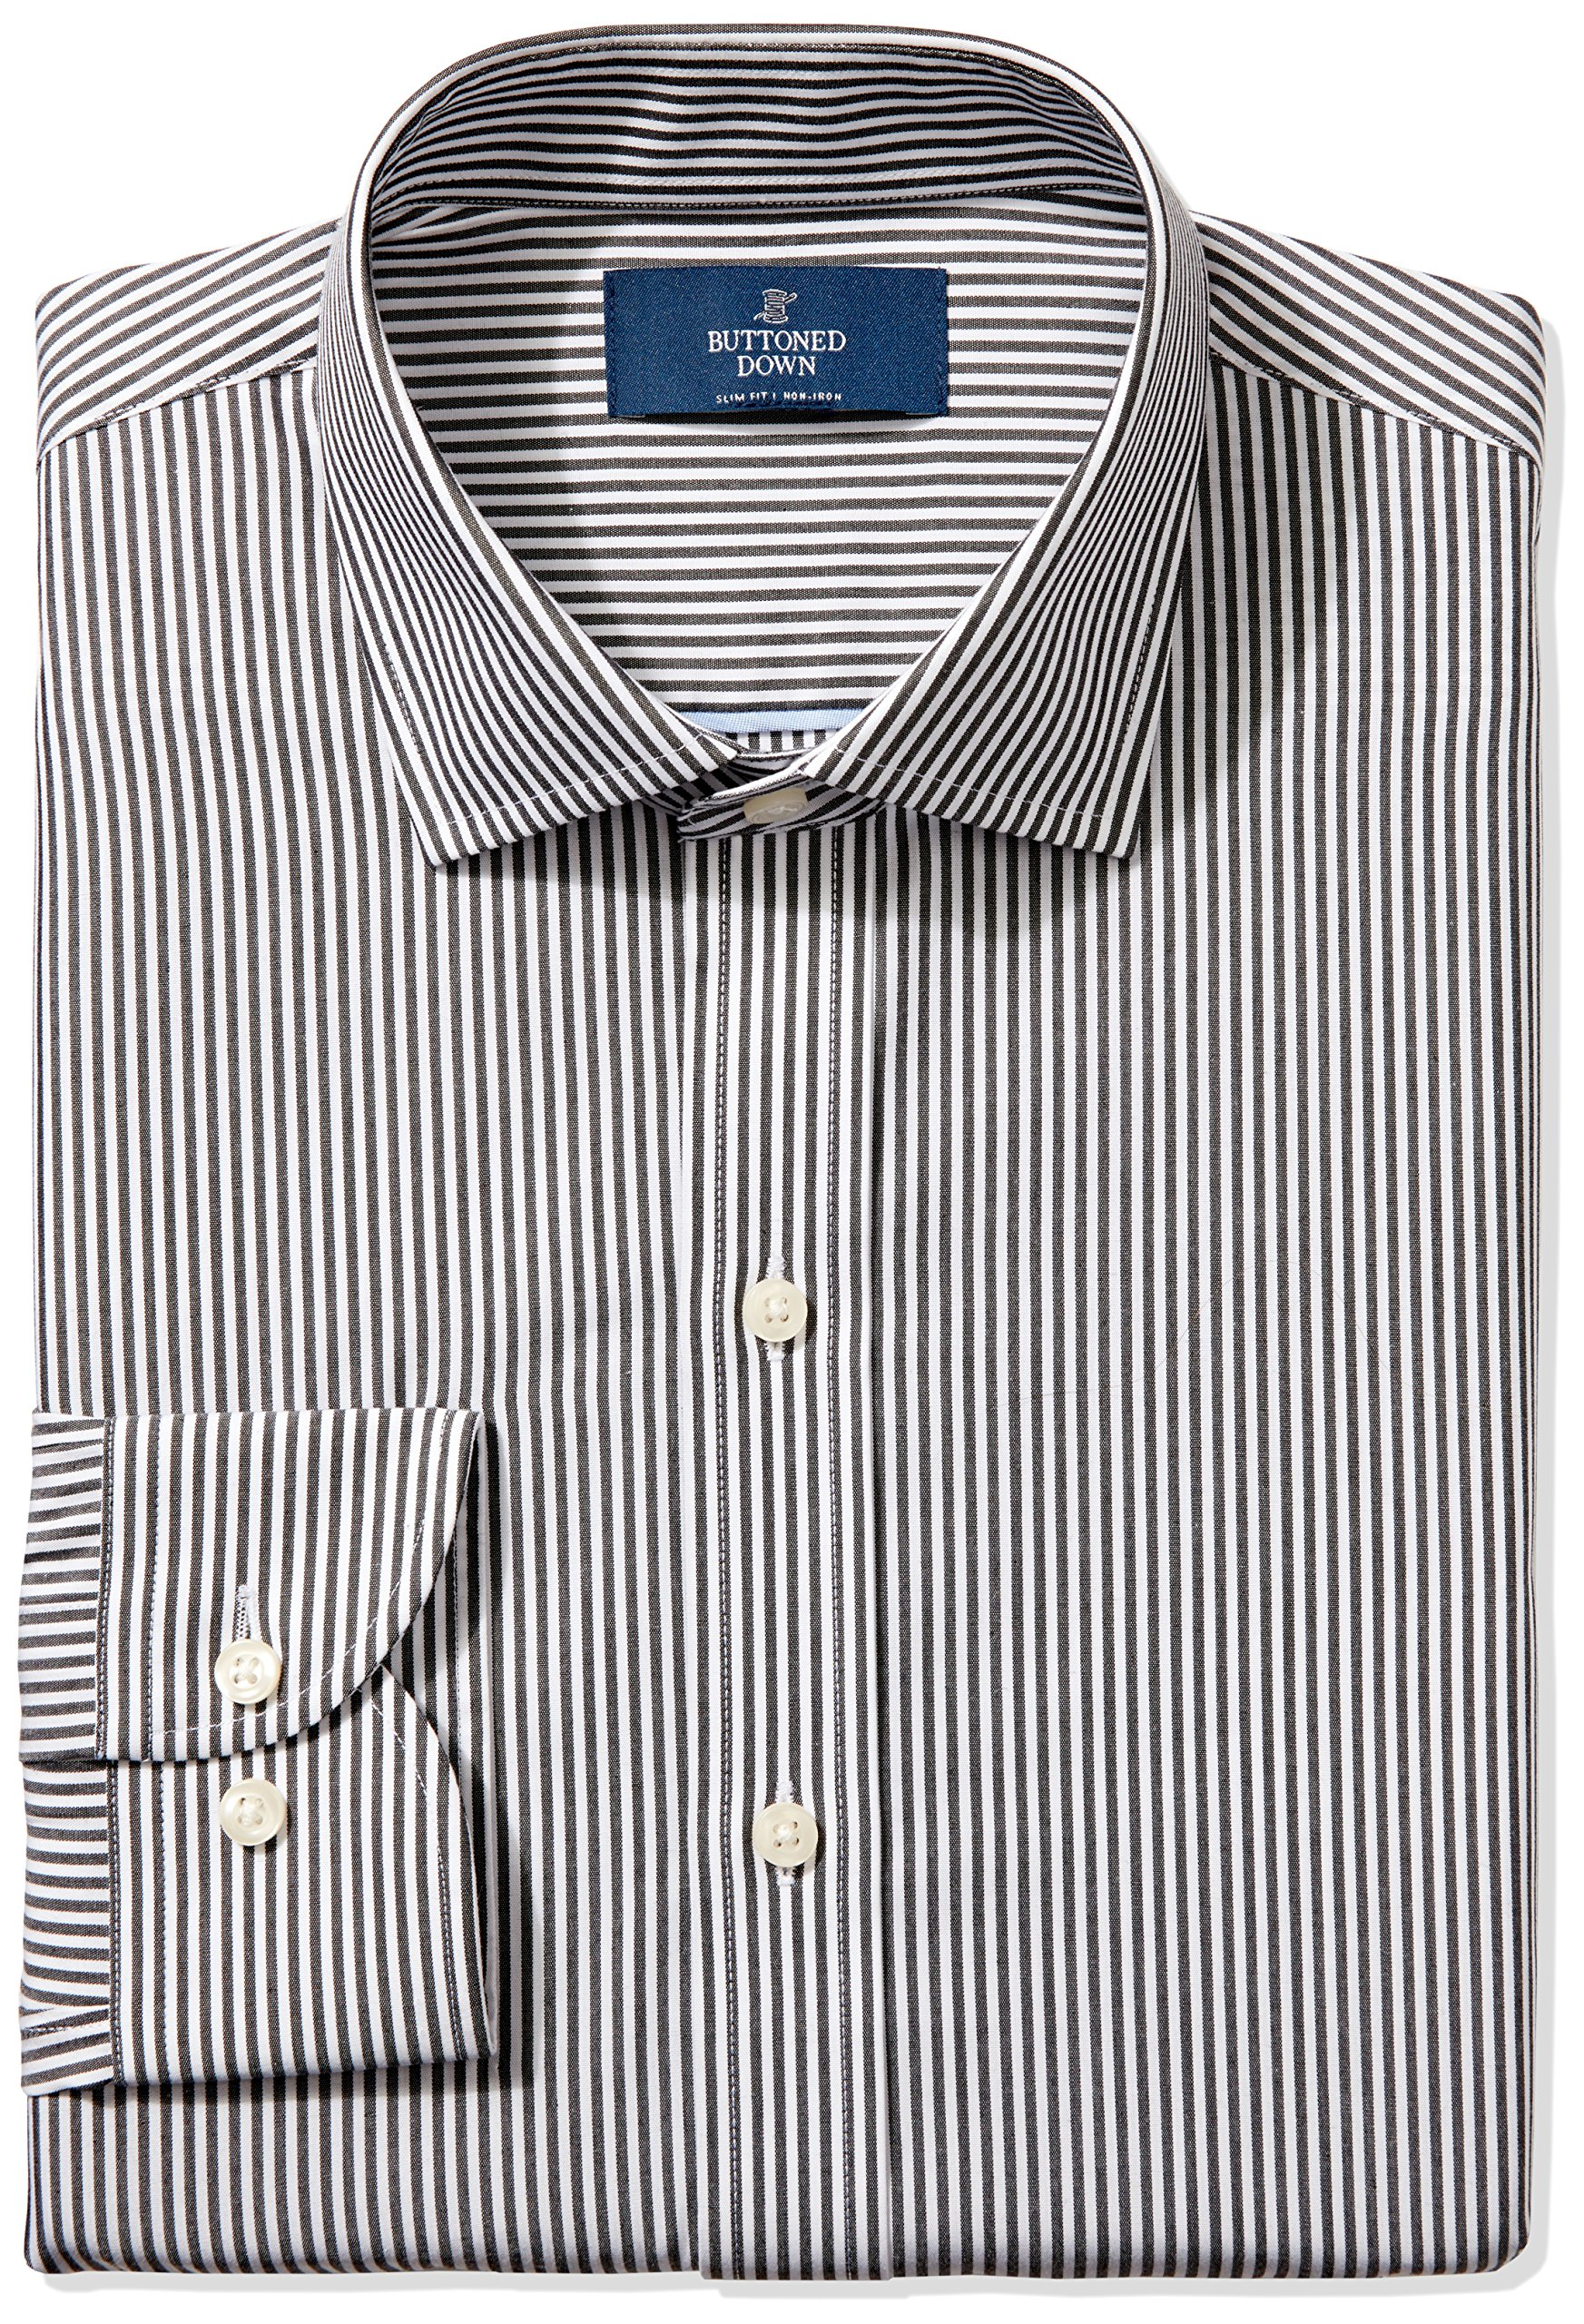 Buttoned Down Men's Slim Fit Spread-Collar Non-Iron Dress Shirt, black Bengal Stripe, 16.5'' Neck 37'' Sleeve